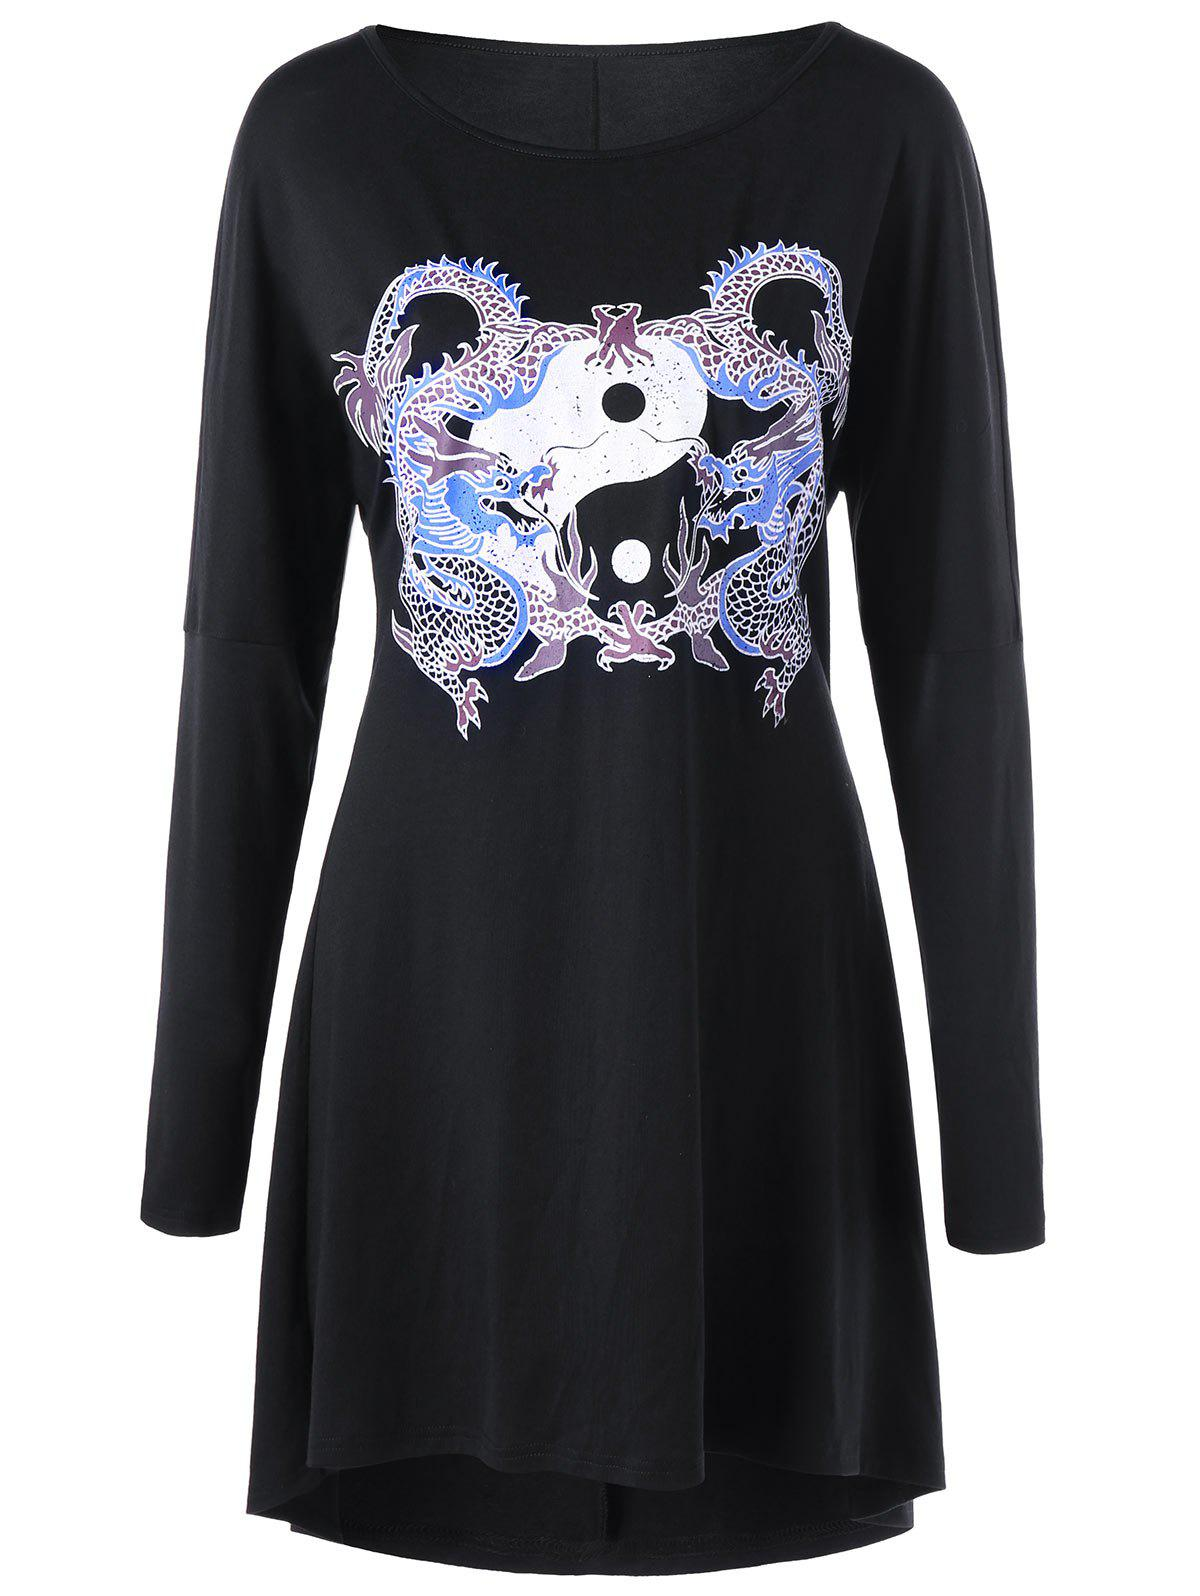 Dragon Print Lace Up Long Sleeve Dress - BLACK M